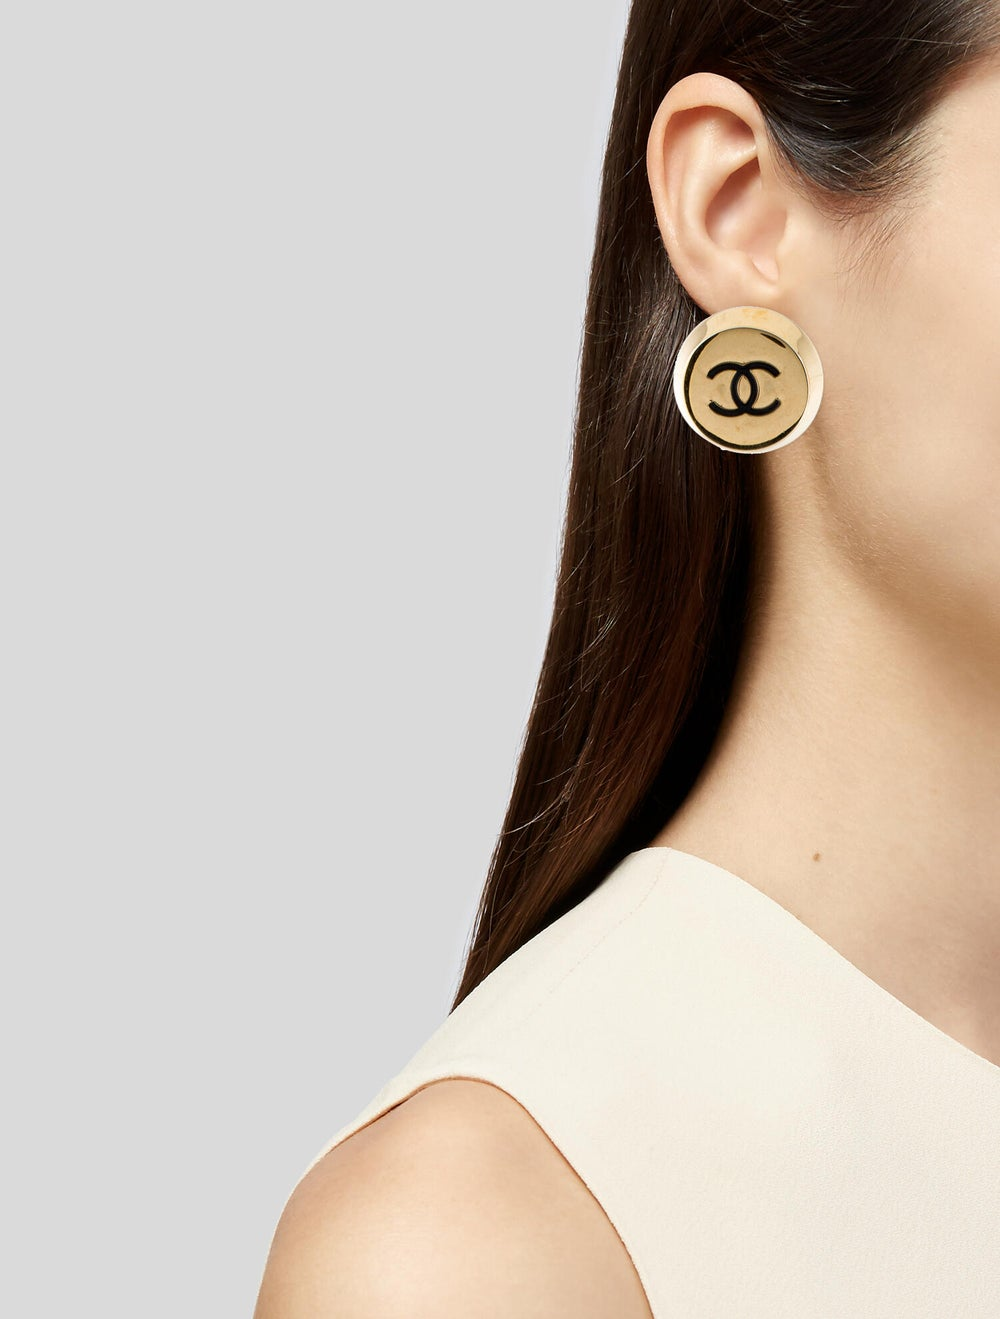 Chanel Vintage CC Clip-On Earrings Gold - image 2